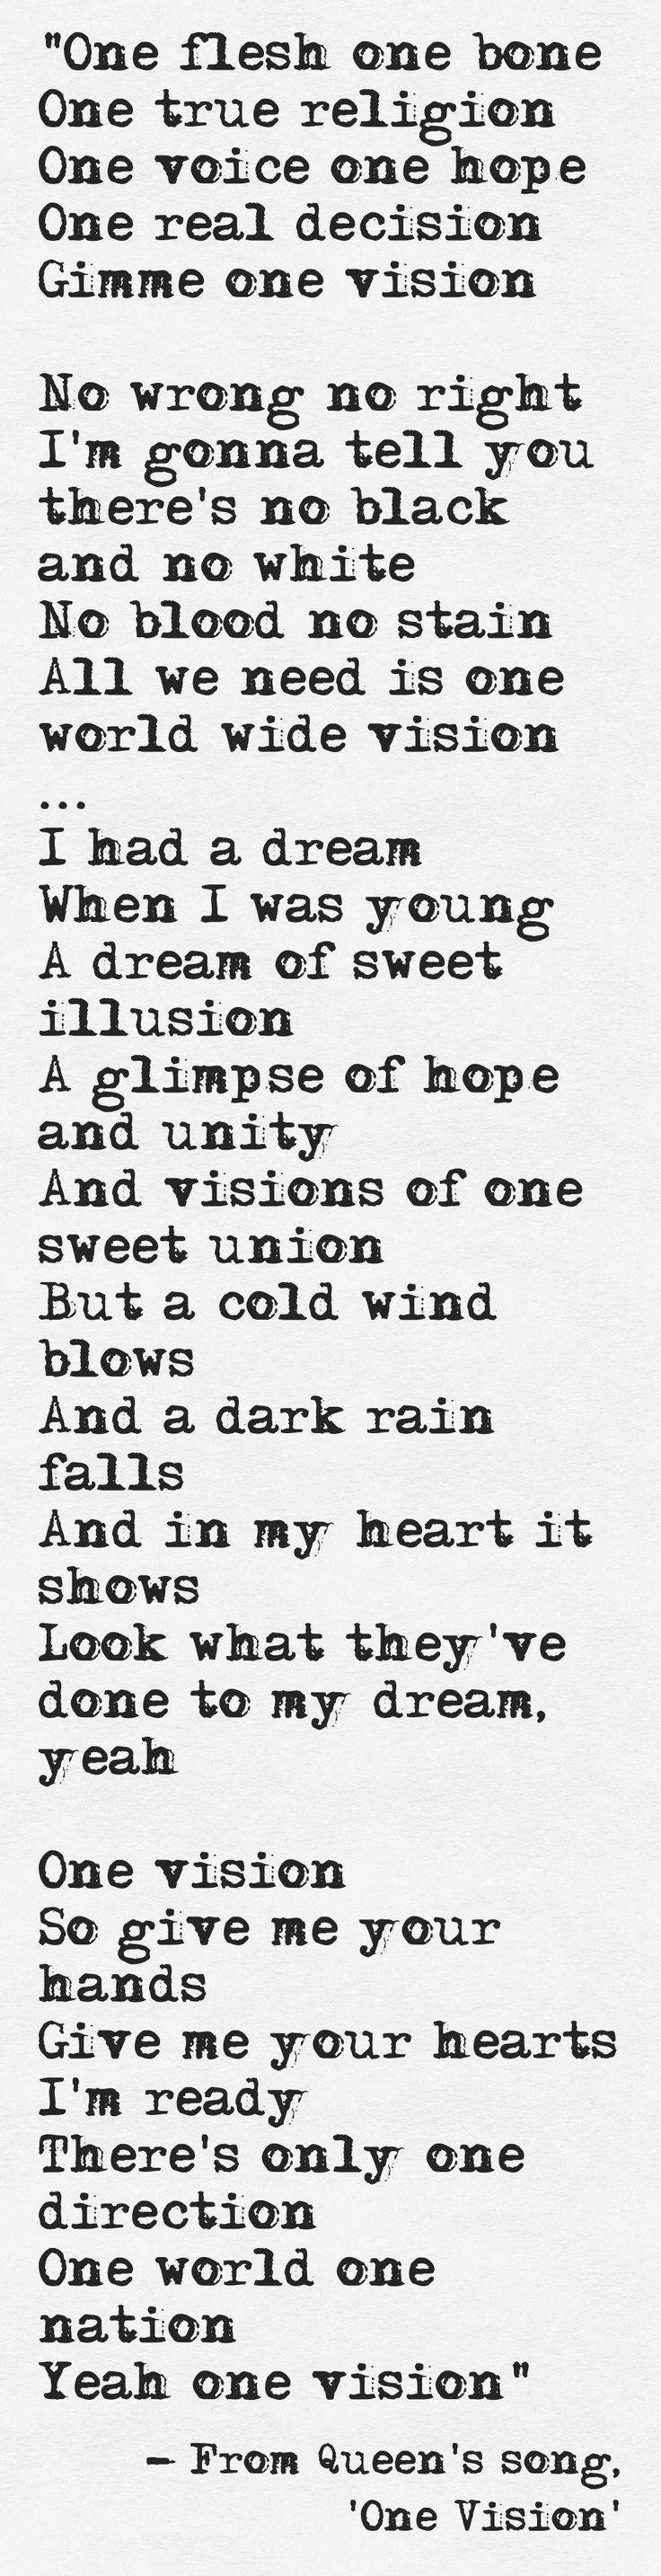 257 best MUSIC: LYRICS images on Pinterest | Lyrics, Music lyrics ...